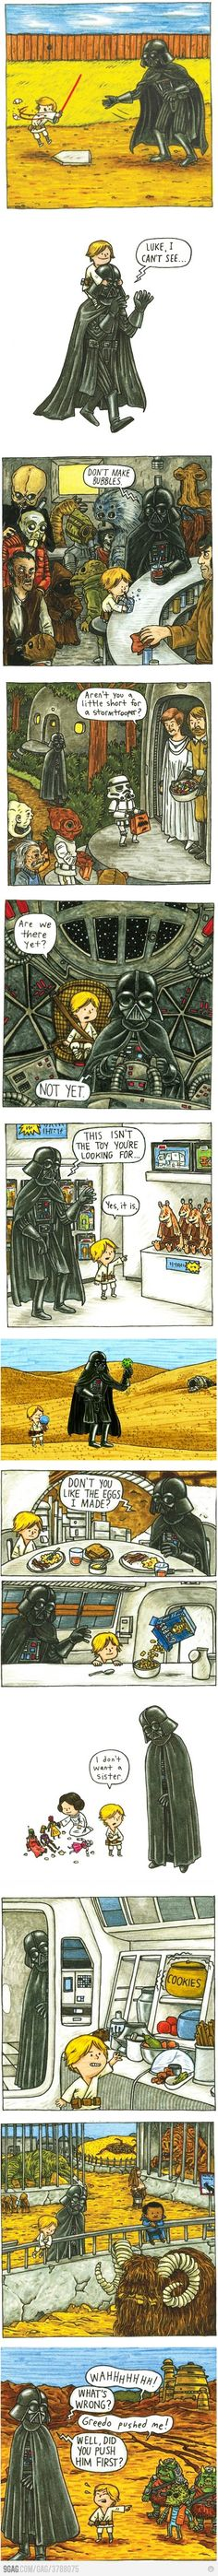 Darth Vader - Father knows best